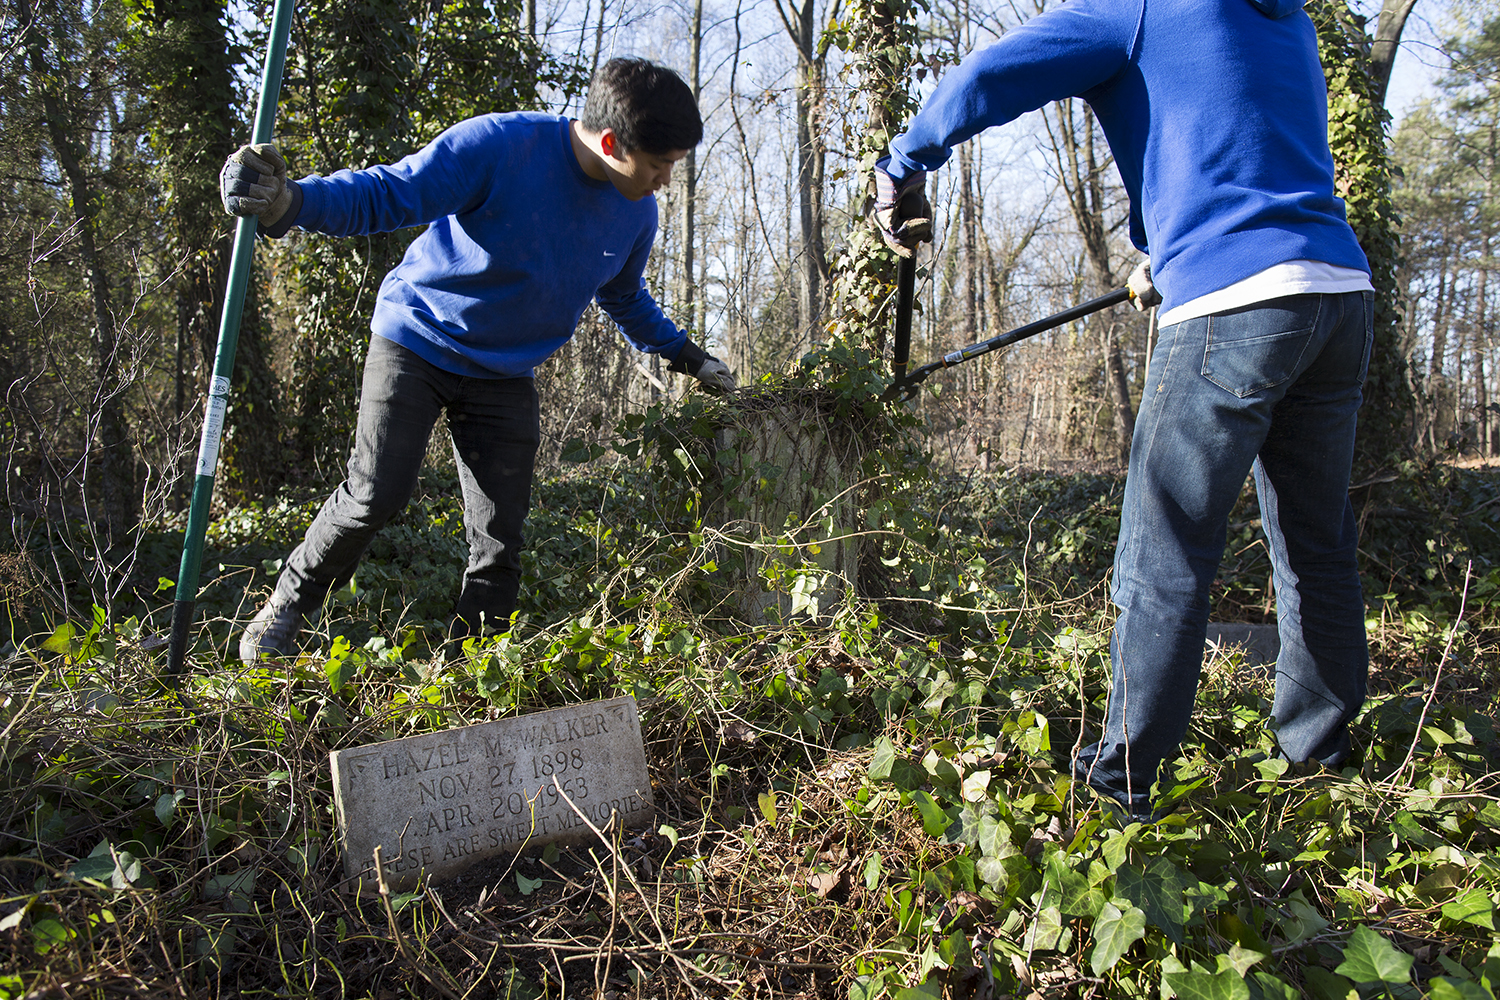 VCU students strip ivy from a headstone and clear burial plot at East End Cemetery, Henrico County/Richmond, Virginia, January 31, 2015. ©brianpalmer.photos 2015